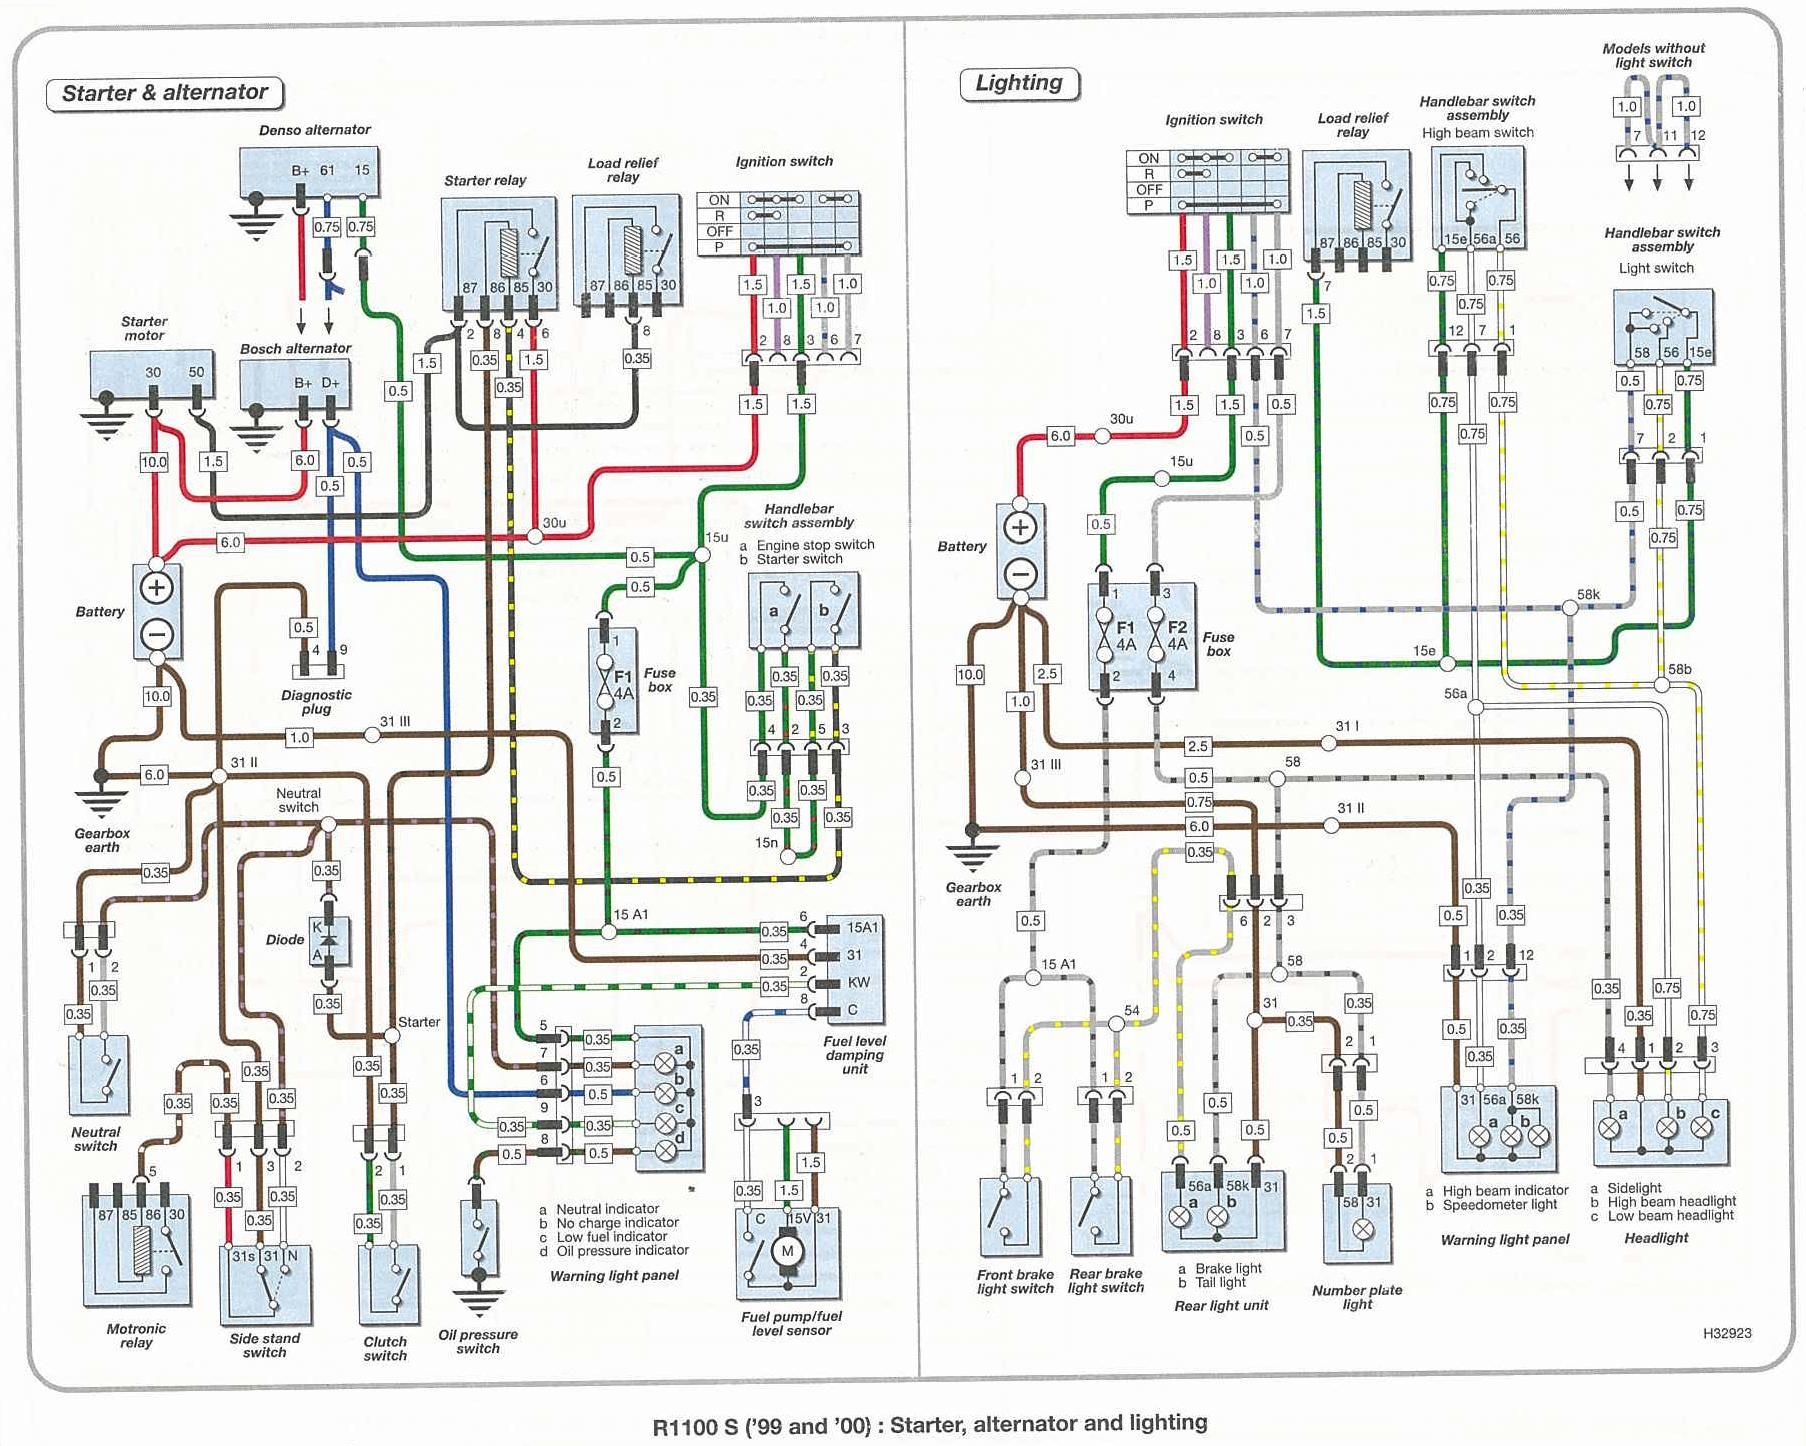 wiring02 bmw r1100s wiring diagrams bmw 2002 wiring diagram at gsmx.co